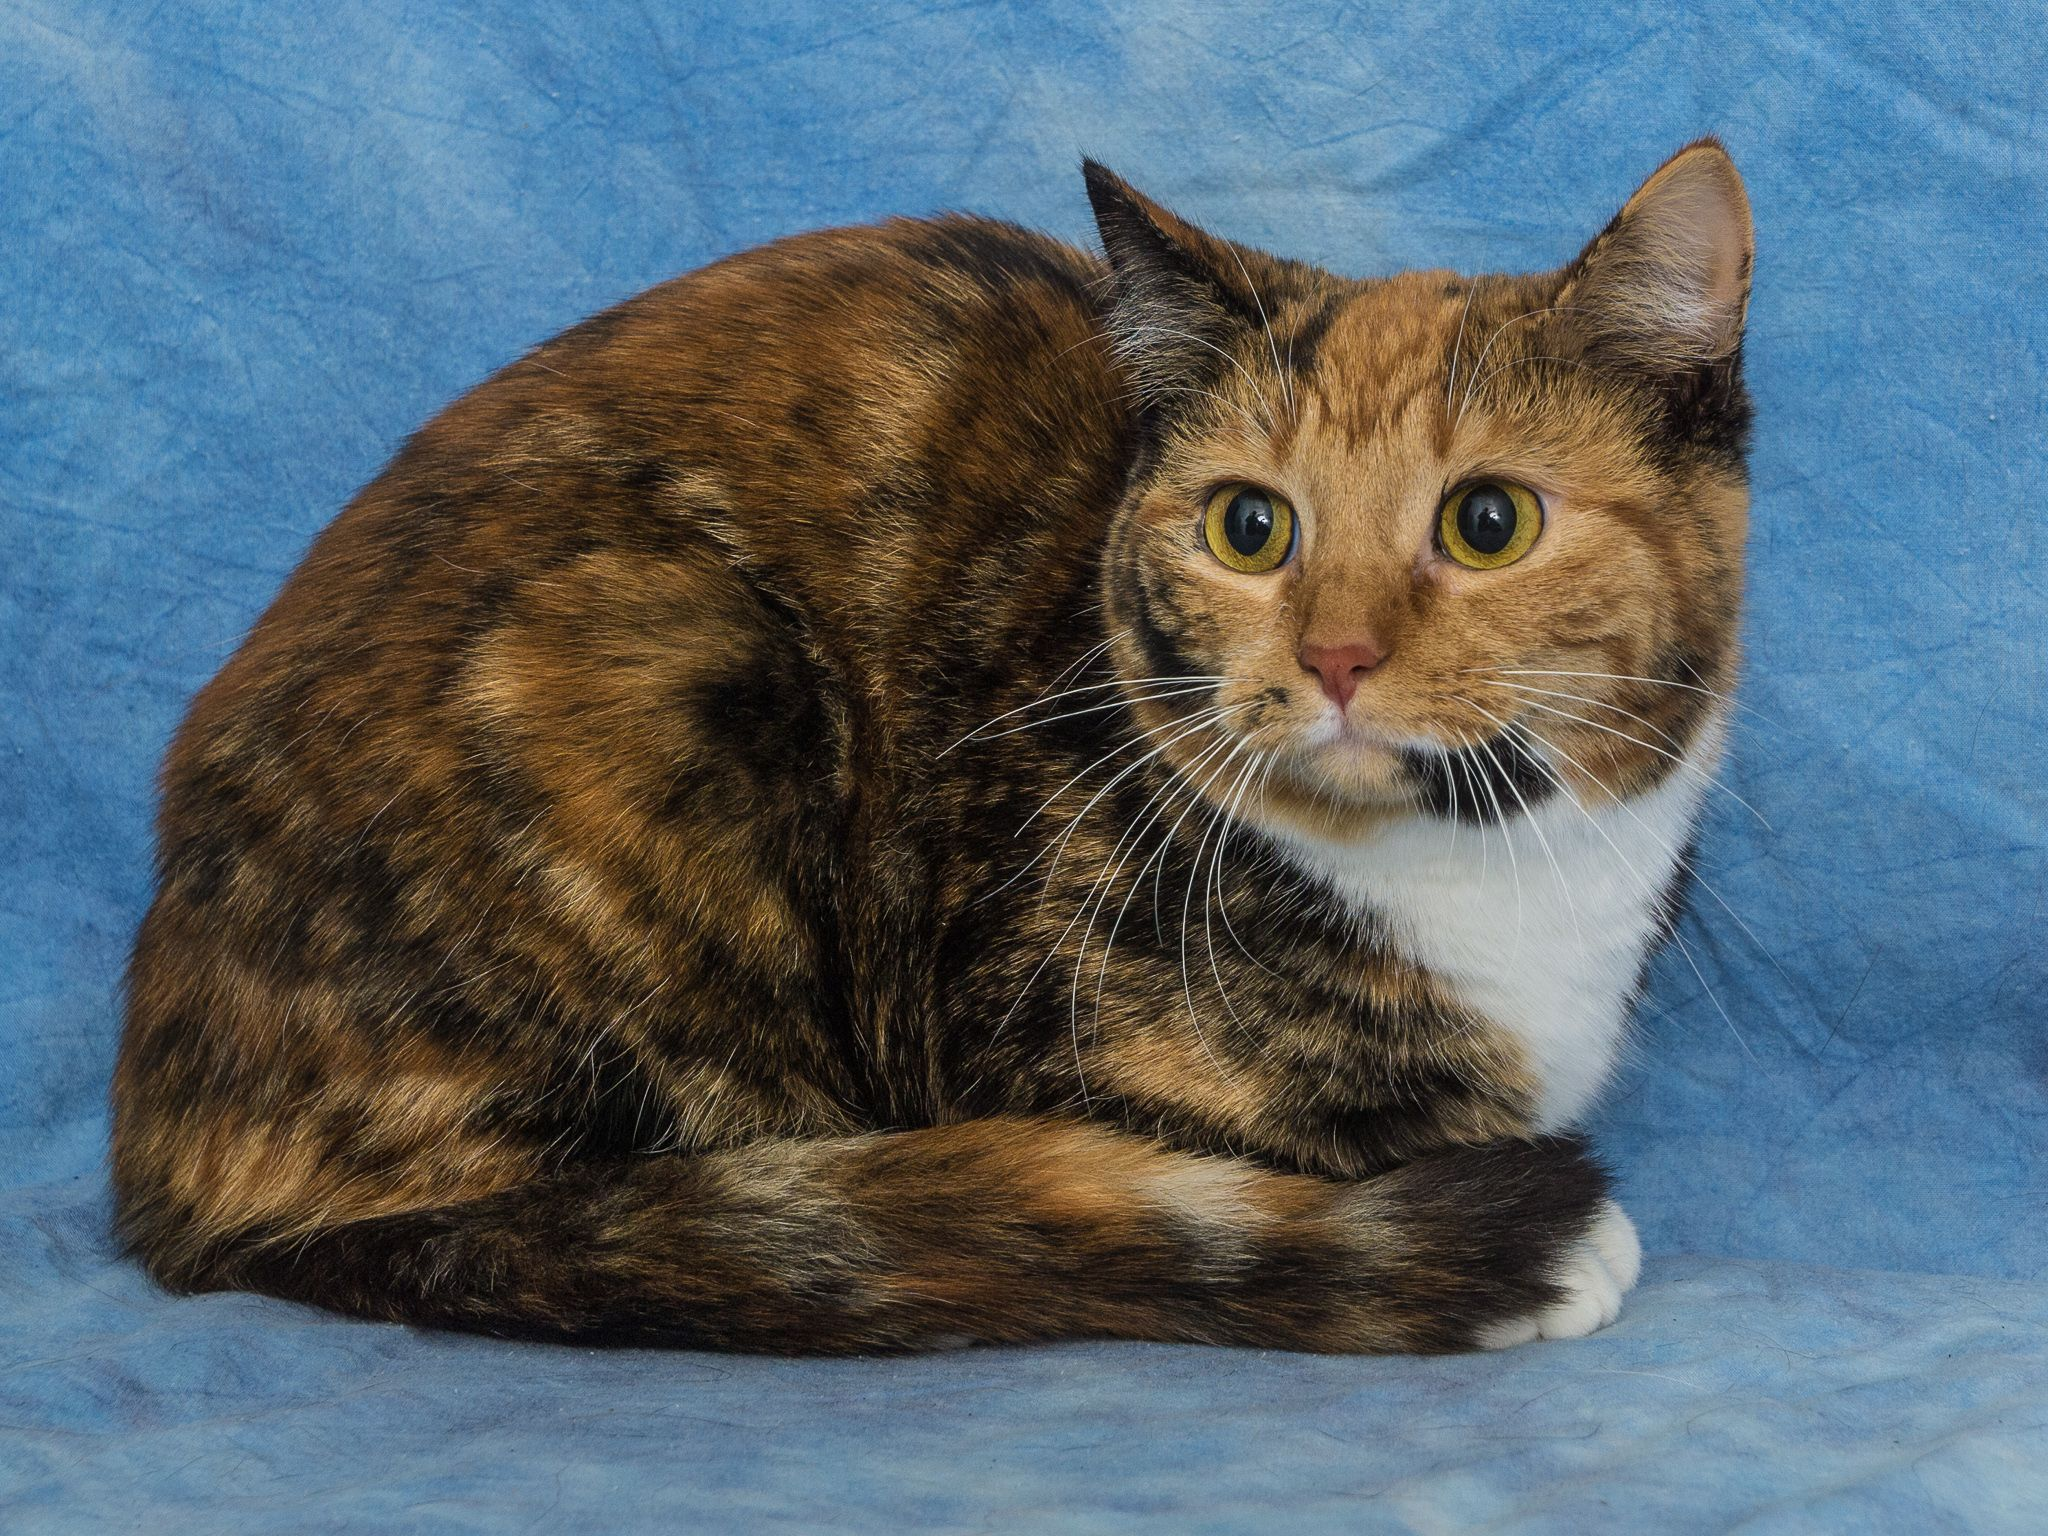 Goldie Found Her Foreverhome On 01 23 14 Congrats Goldie Opt2adopt Livessaved Humane Society Animals Pets